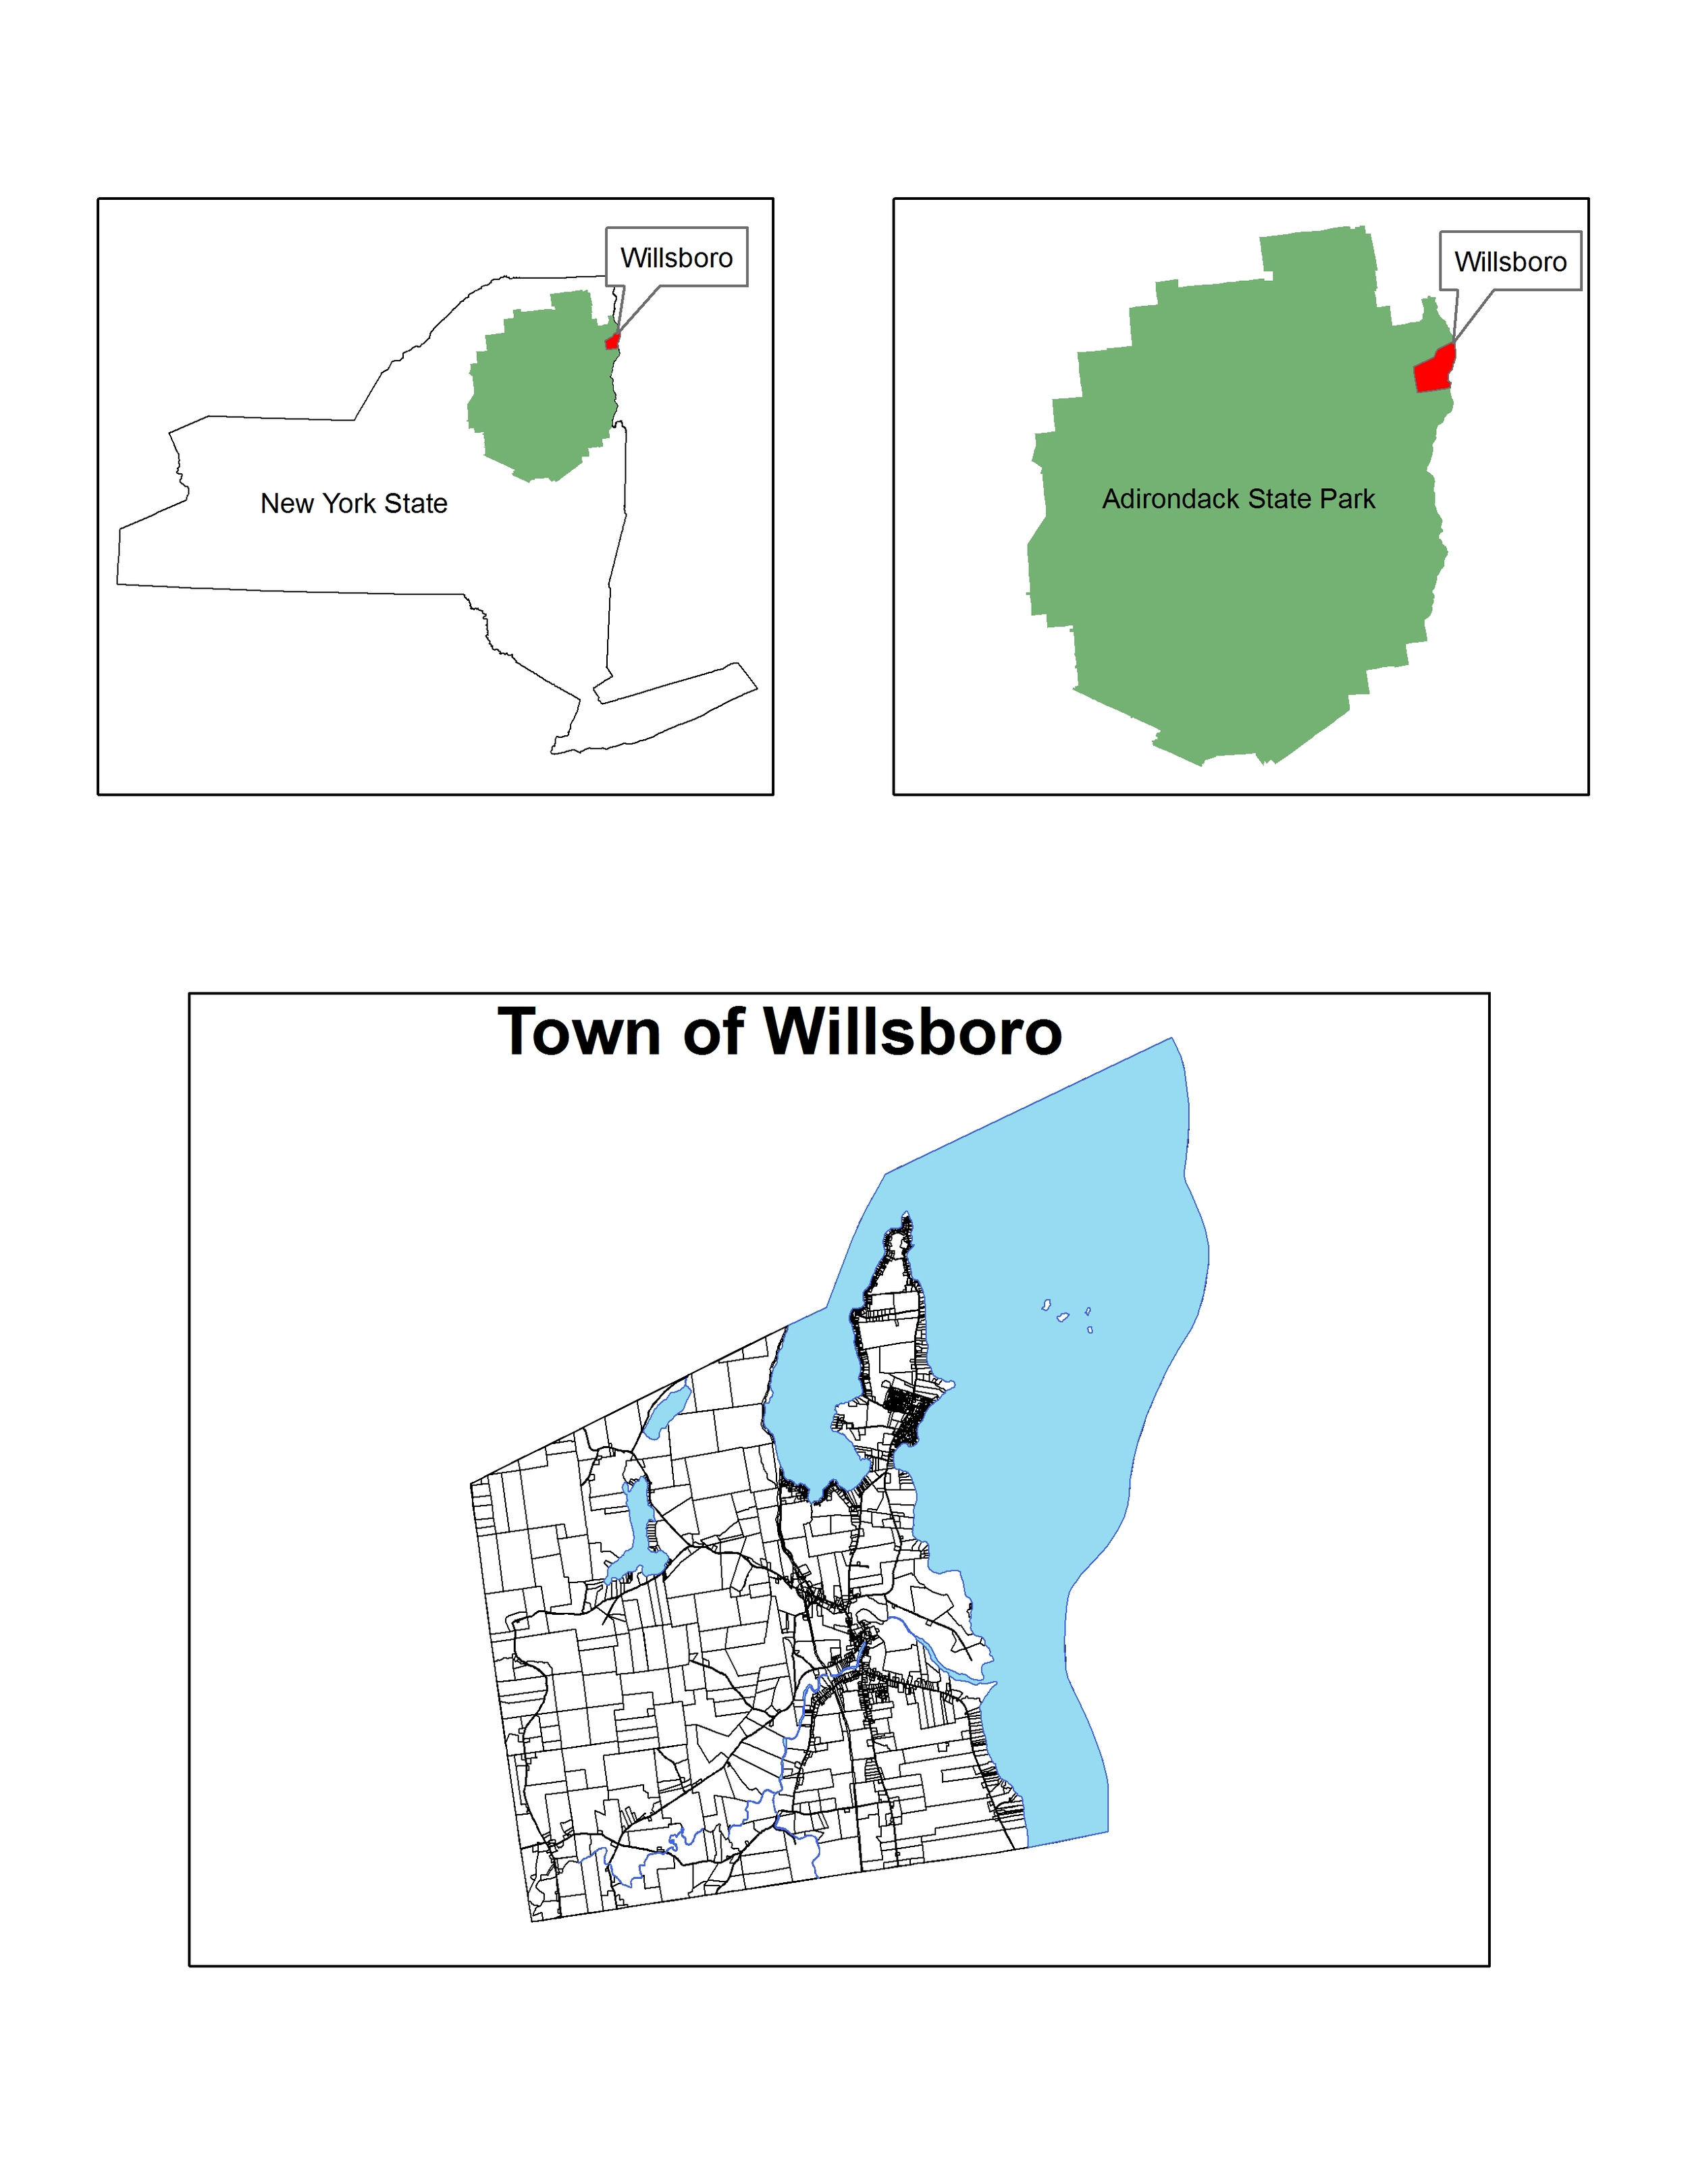 Willsboro LocationMap v1 6 21 10.jpg